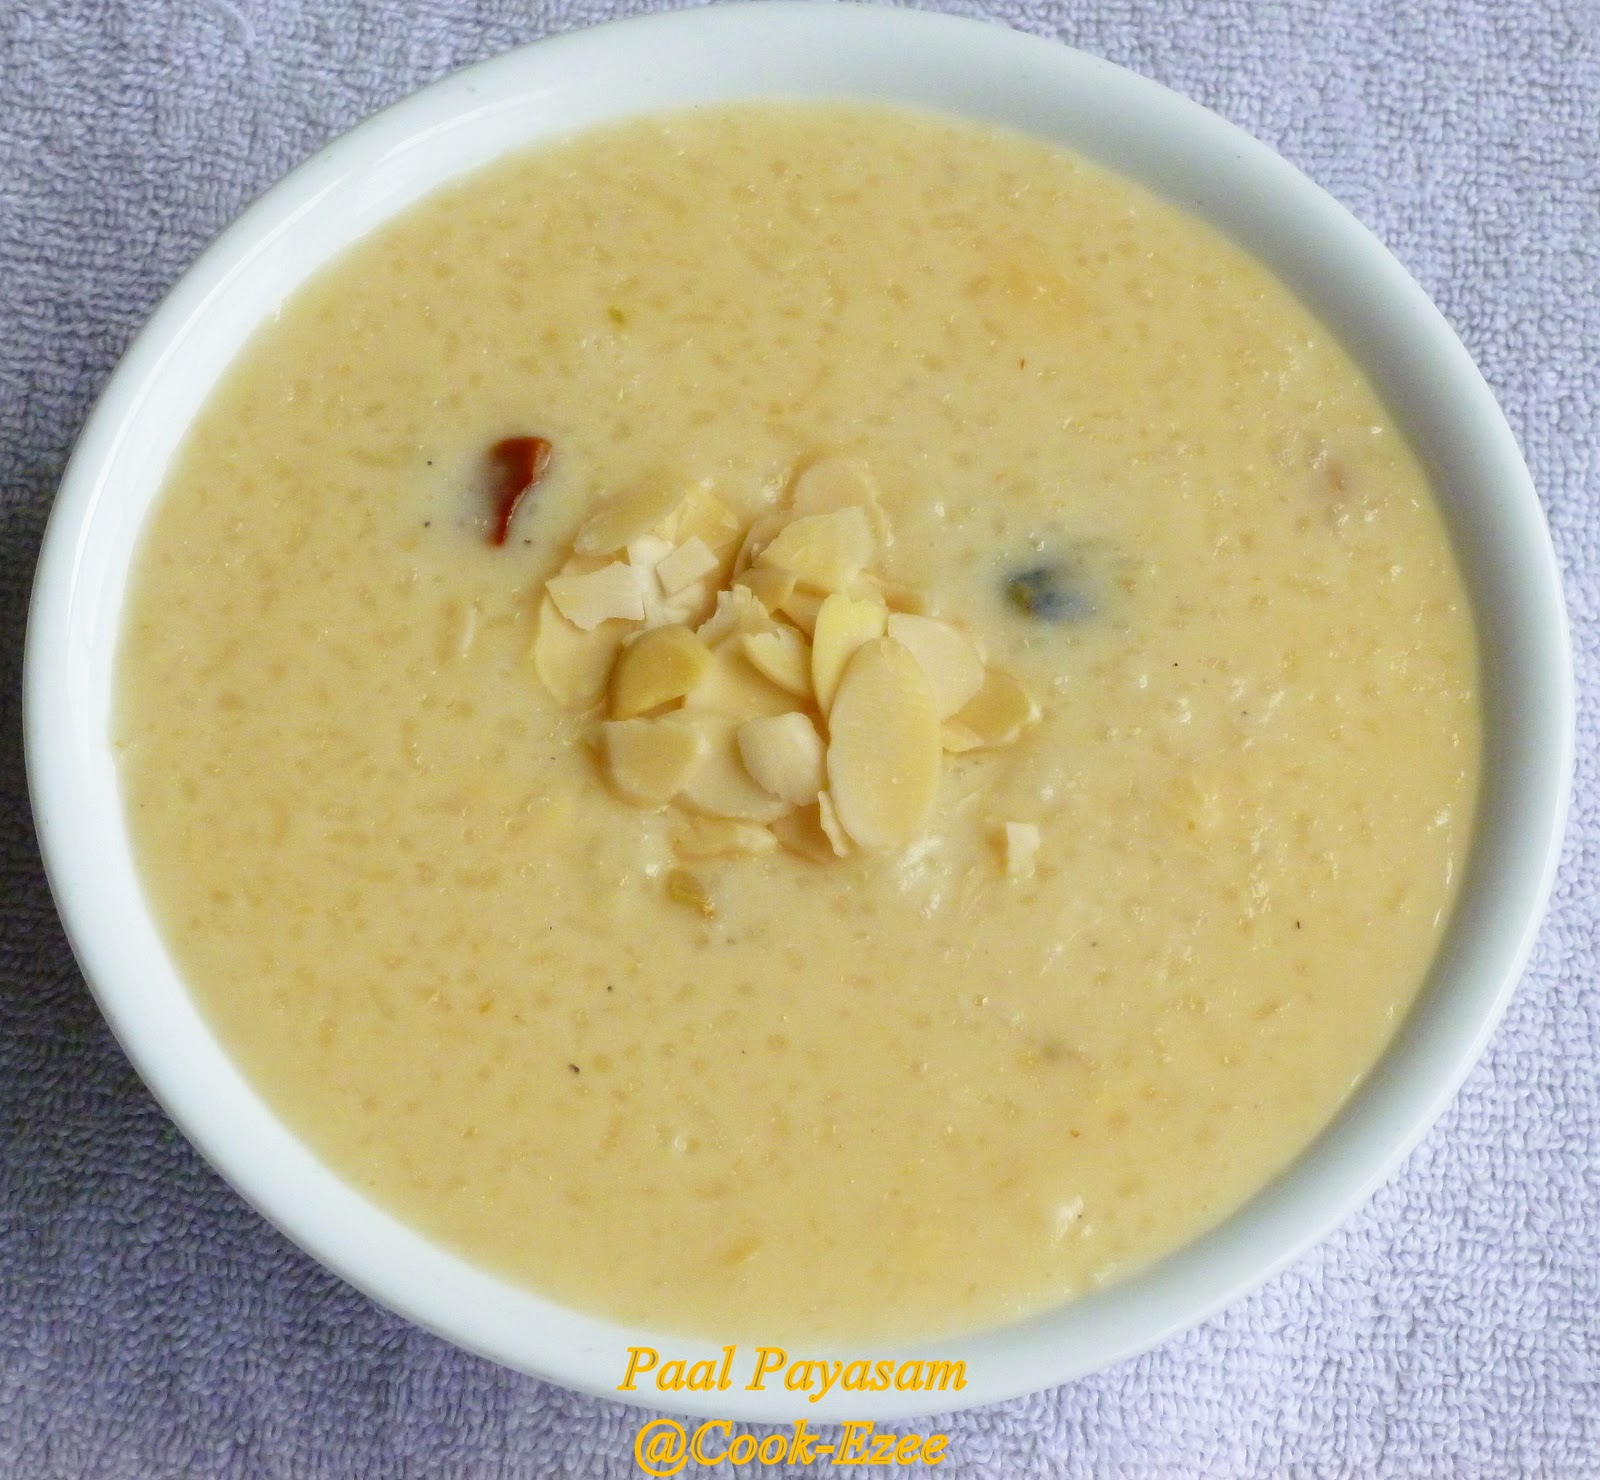 Cook ezee paal payasamrice kheerrice pudding and my 100th post paal payasamrice kheerrice pudding and my 100th post ccuart Gallery